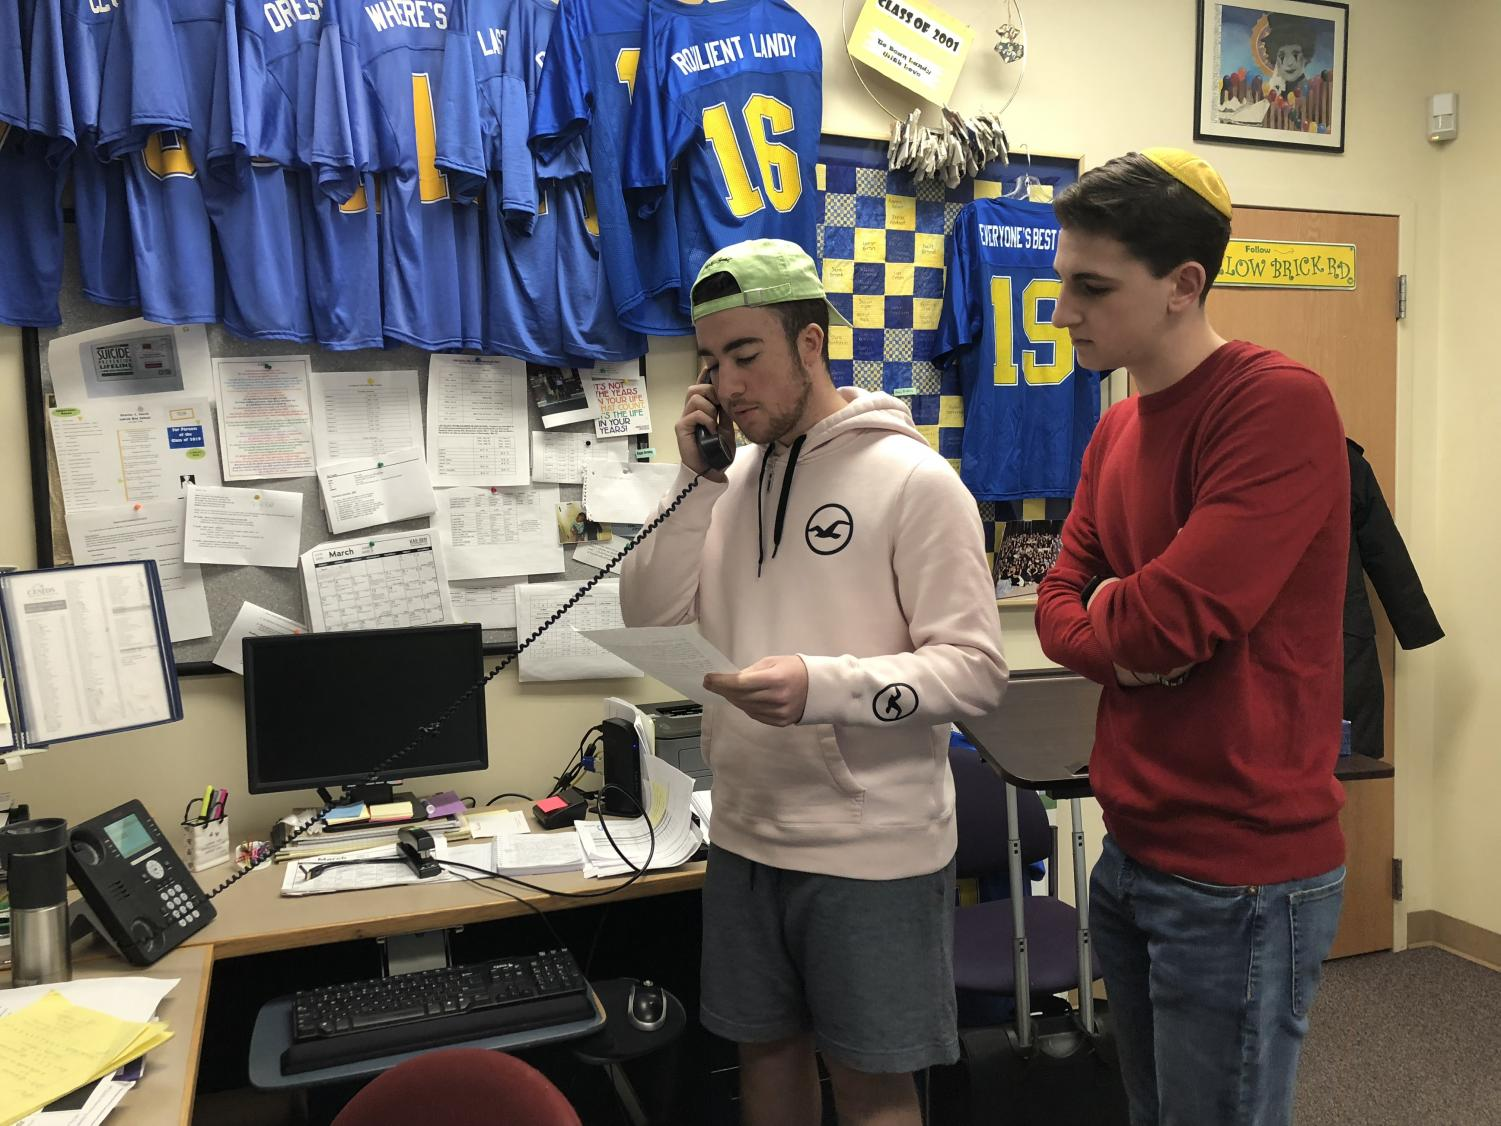 Junior Ryan Bauman and sophomore Alex Landy address the school over the PA system to commemorate the victims of the Parkland shooting and recent gun violence in America.